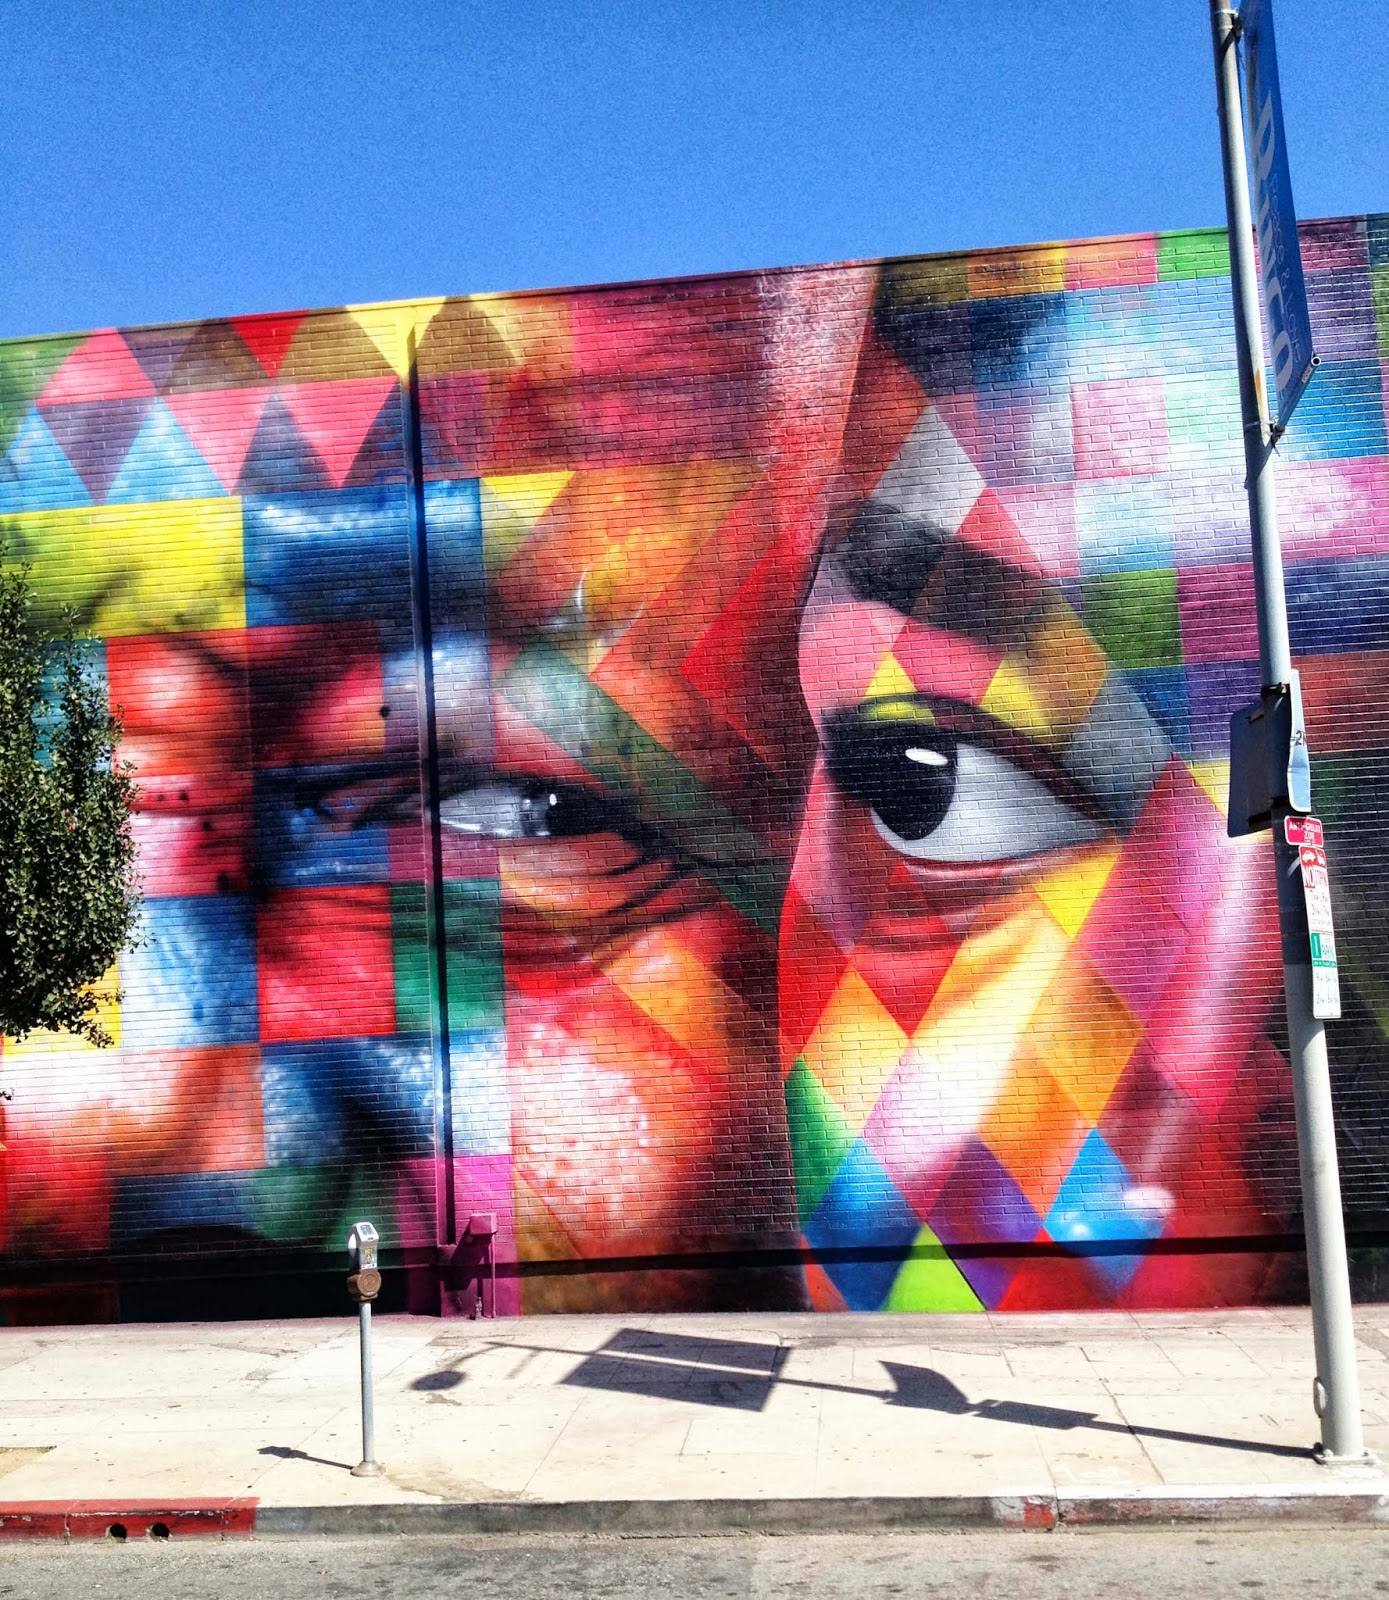 Kobra new mural on n highland ave in los angeles usa for Mural eduardo kobra